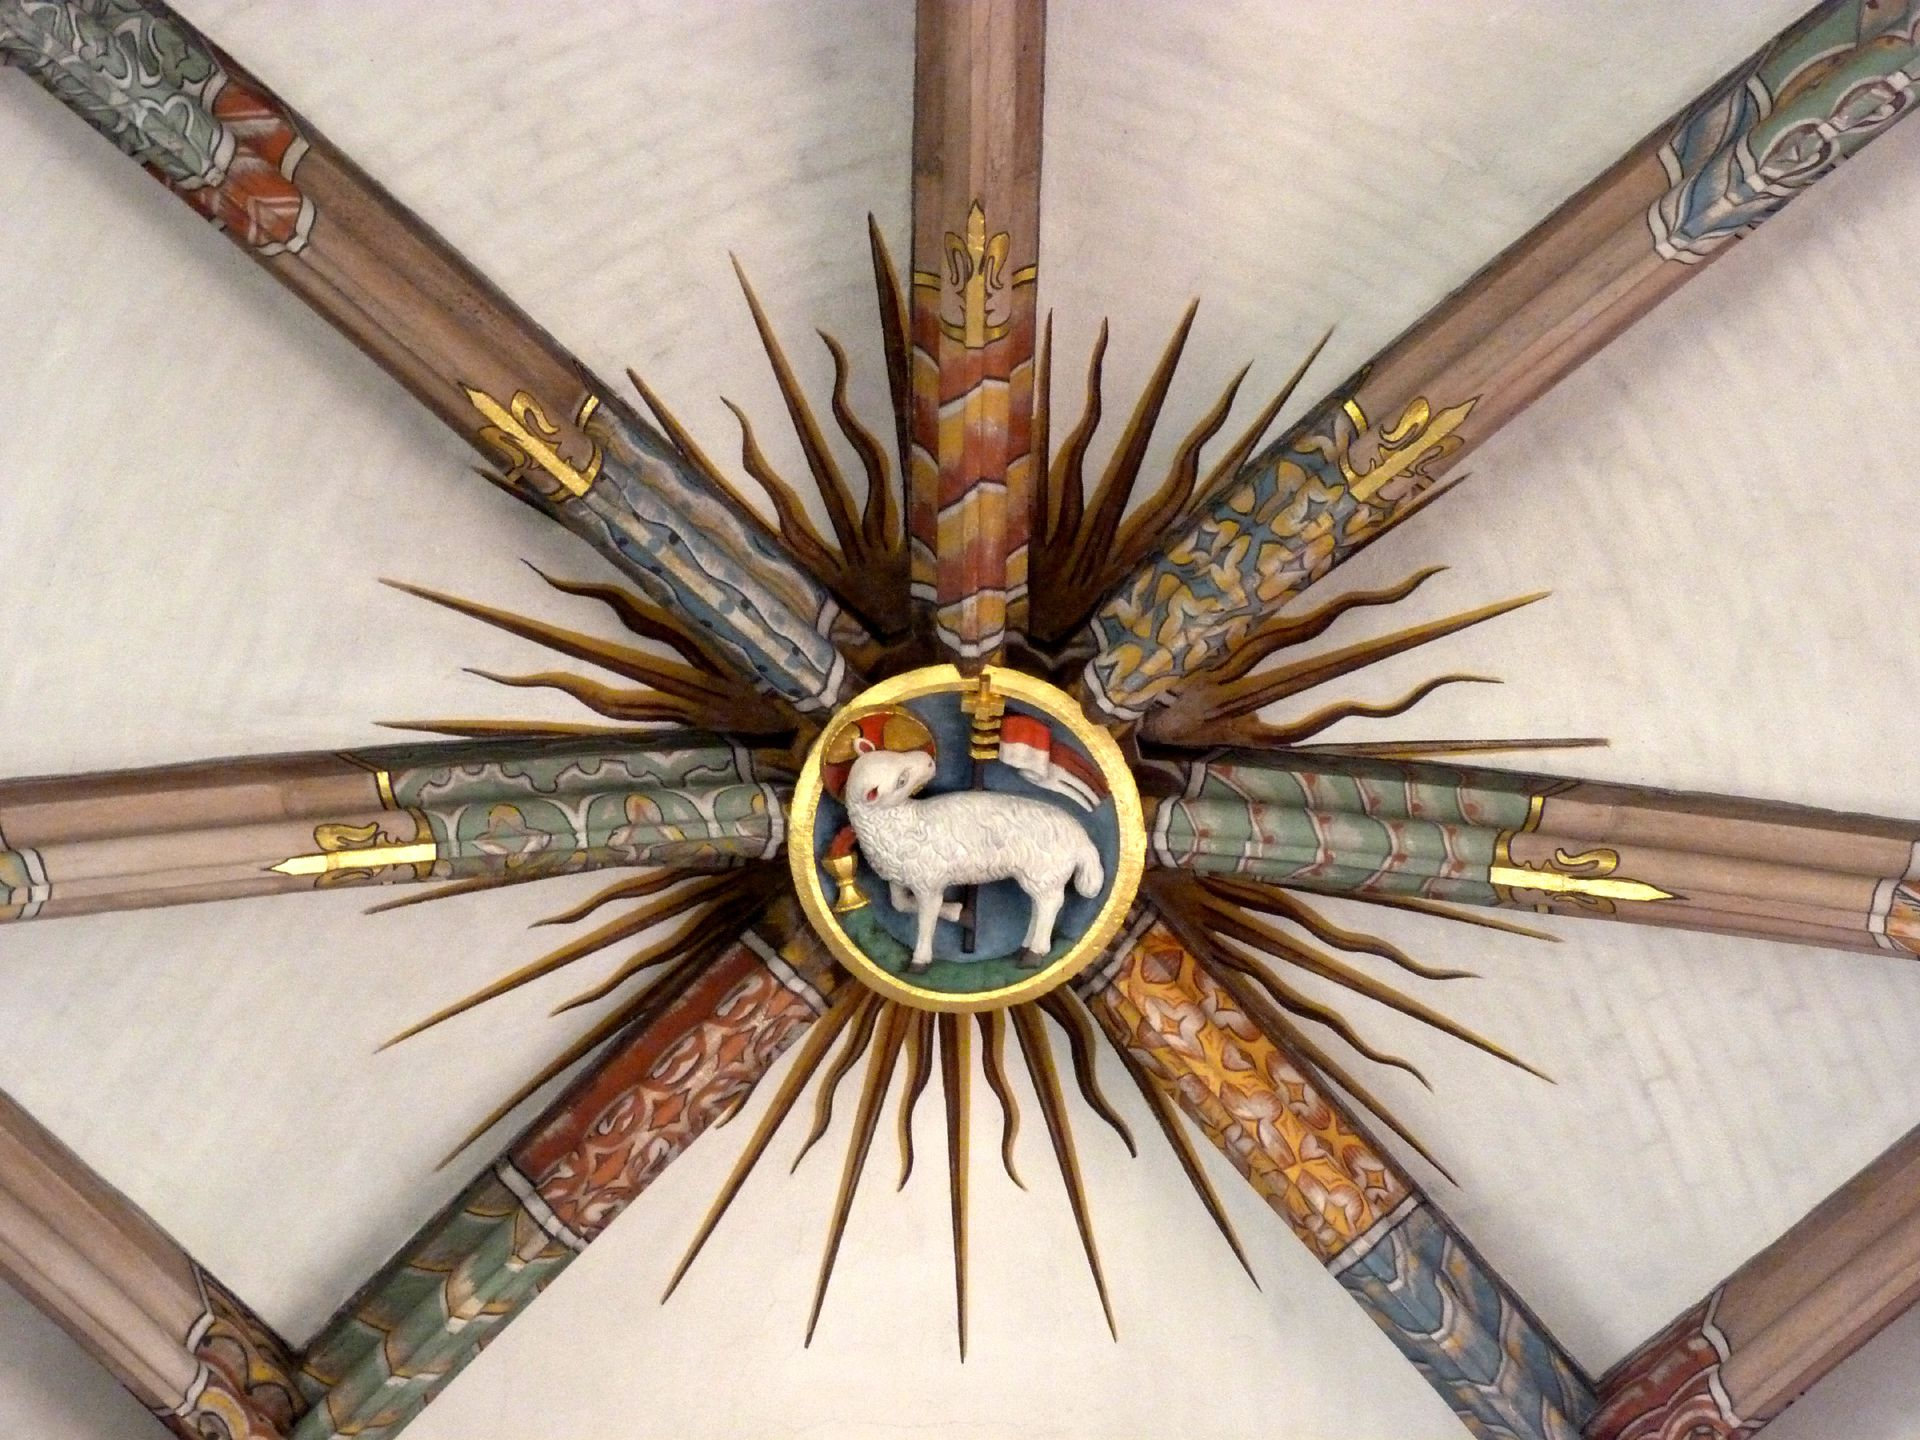 St. Peter Church Choir vault, keystone with Lamb of God